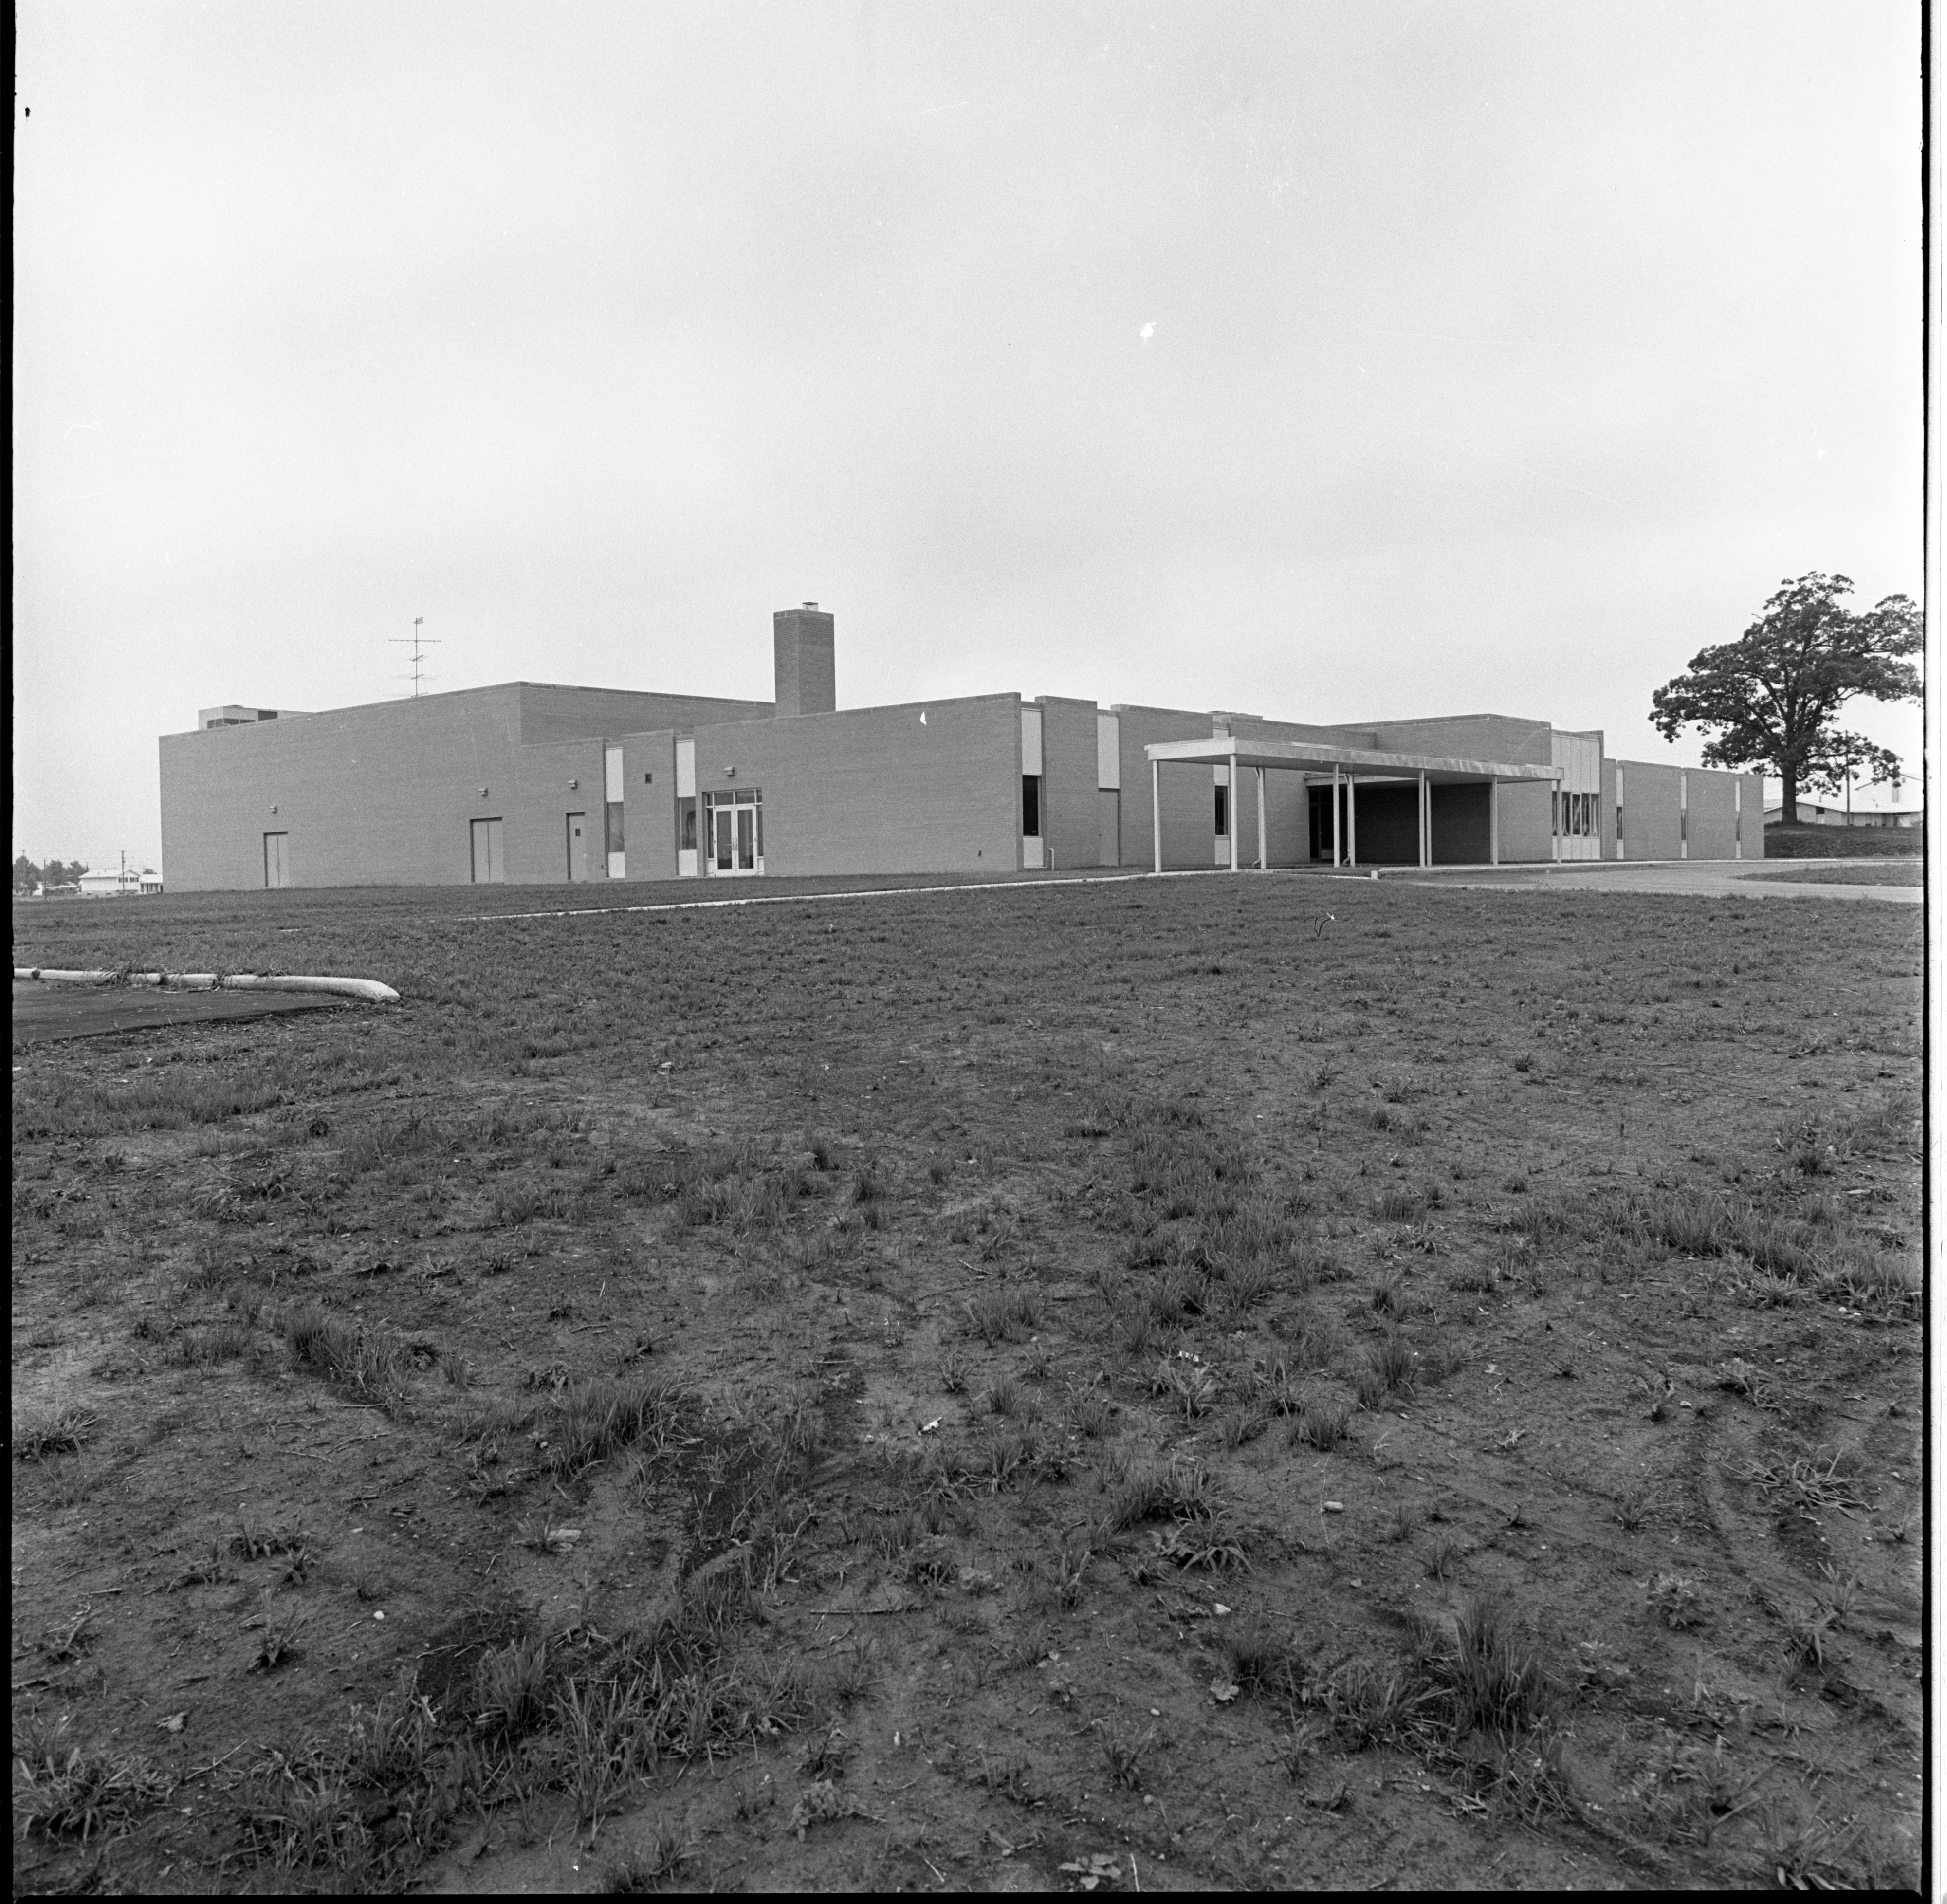 Cheney Elementary School - Willow Run School District, August 1970 image